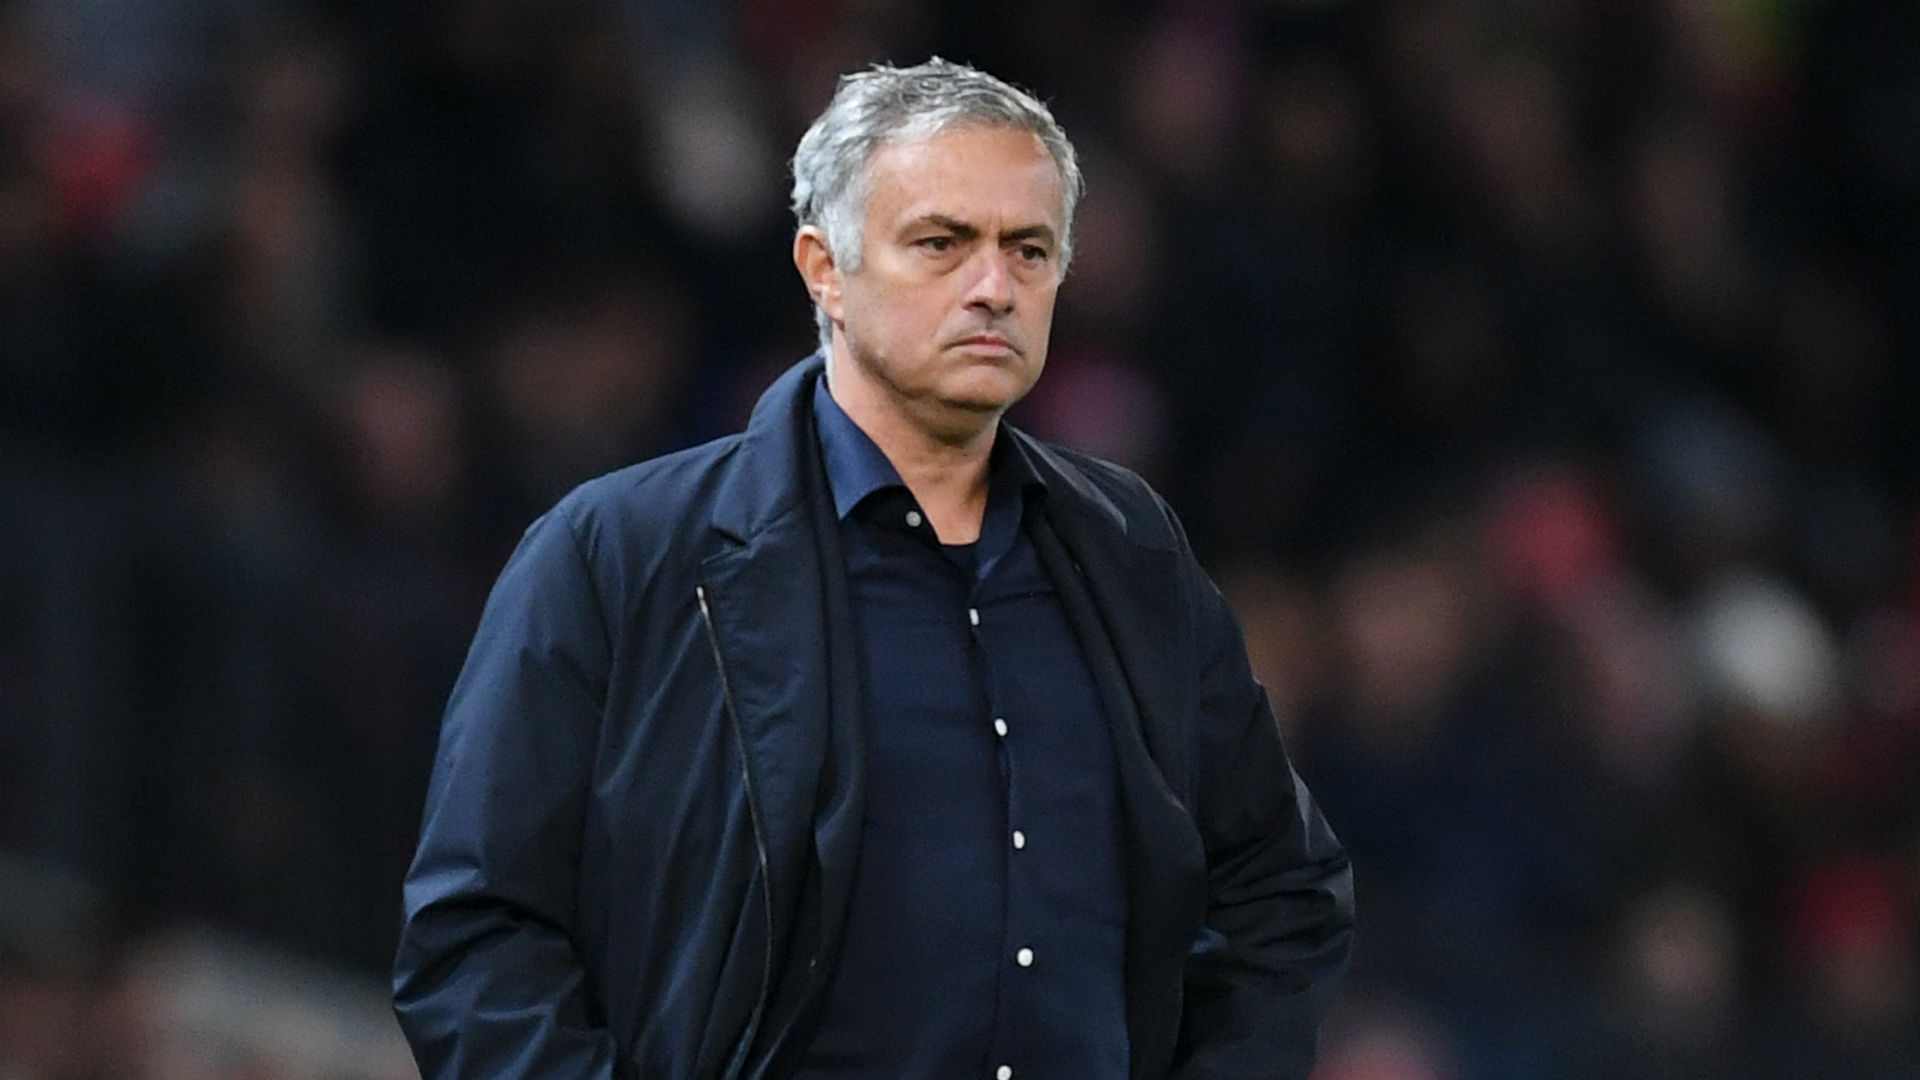 Manchester United should keep Jose Mourinho as manager - Ryan Giggs